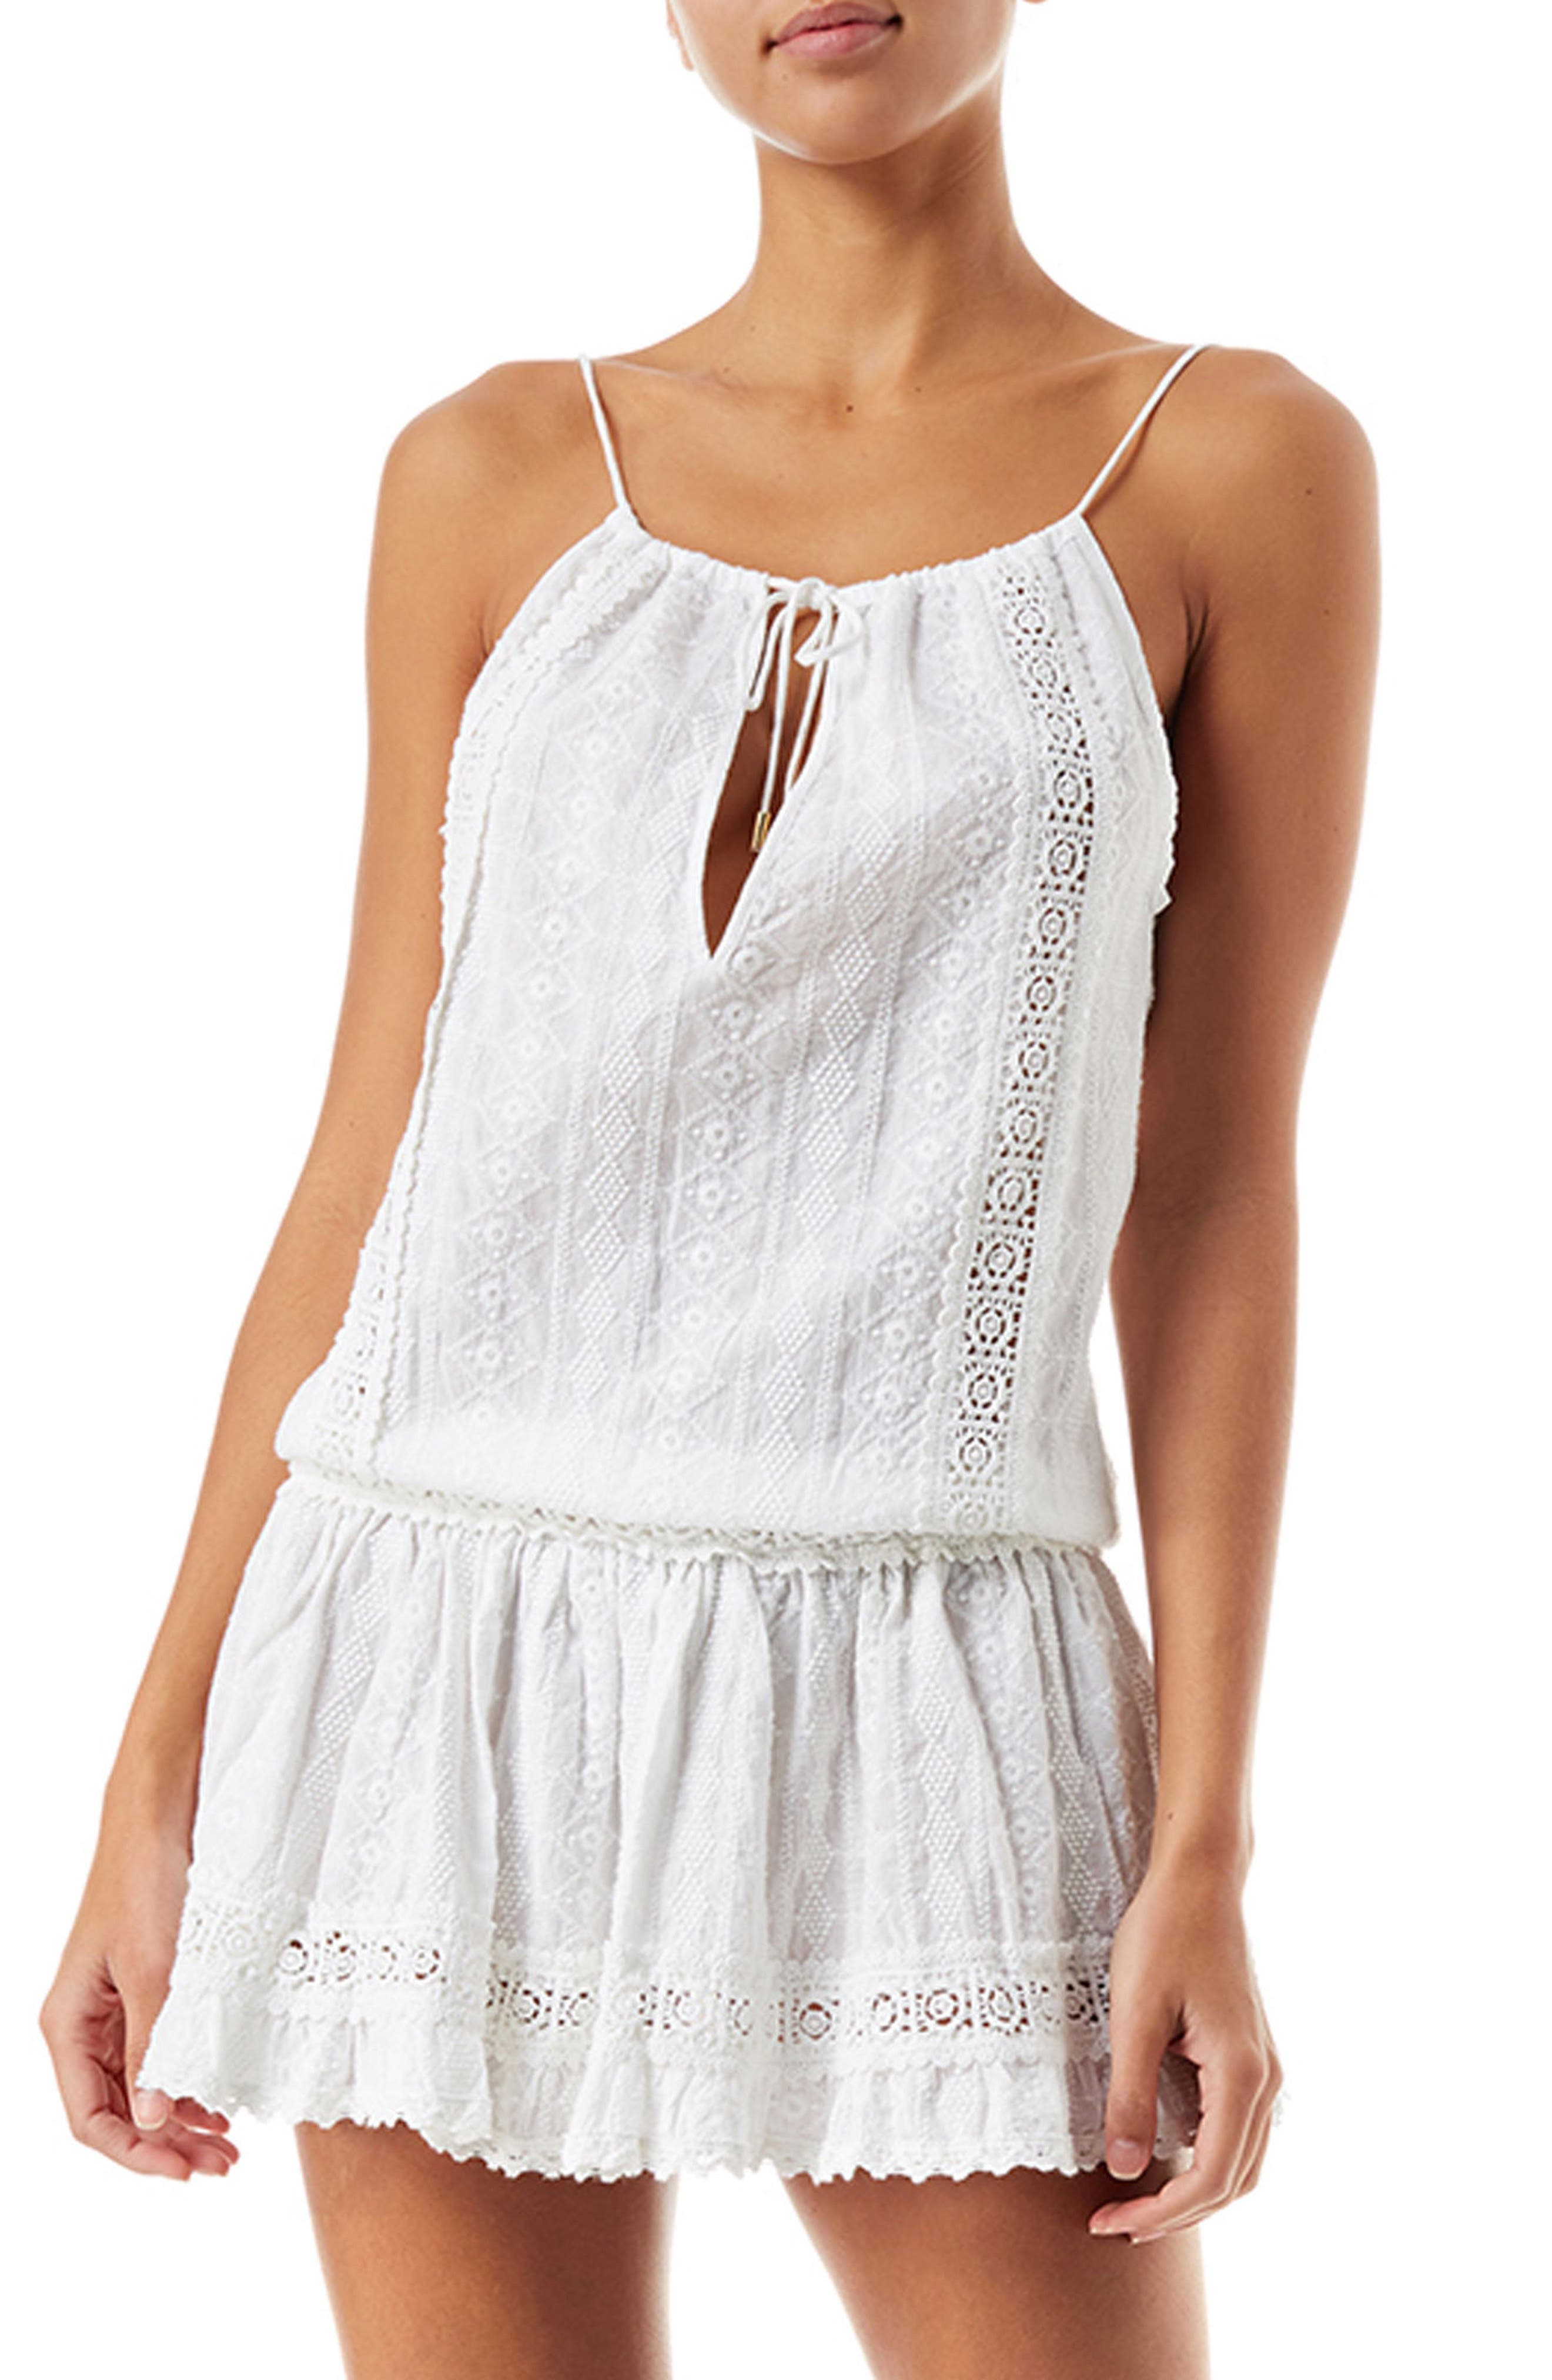 Chelsea Cover-Up Romper,                             Main thumbnail 1, color,                             115